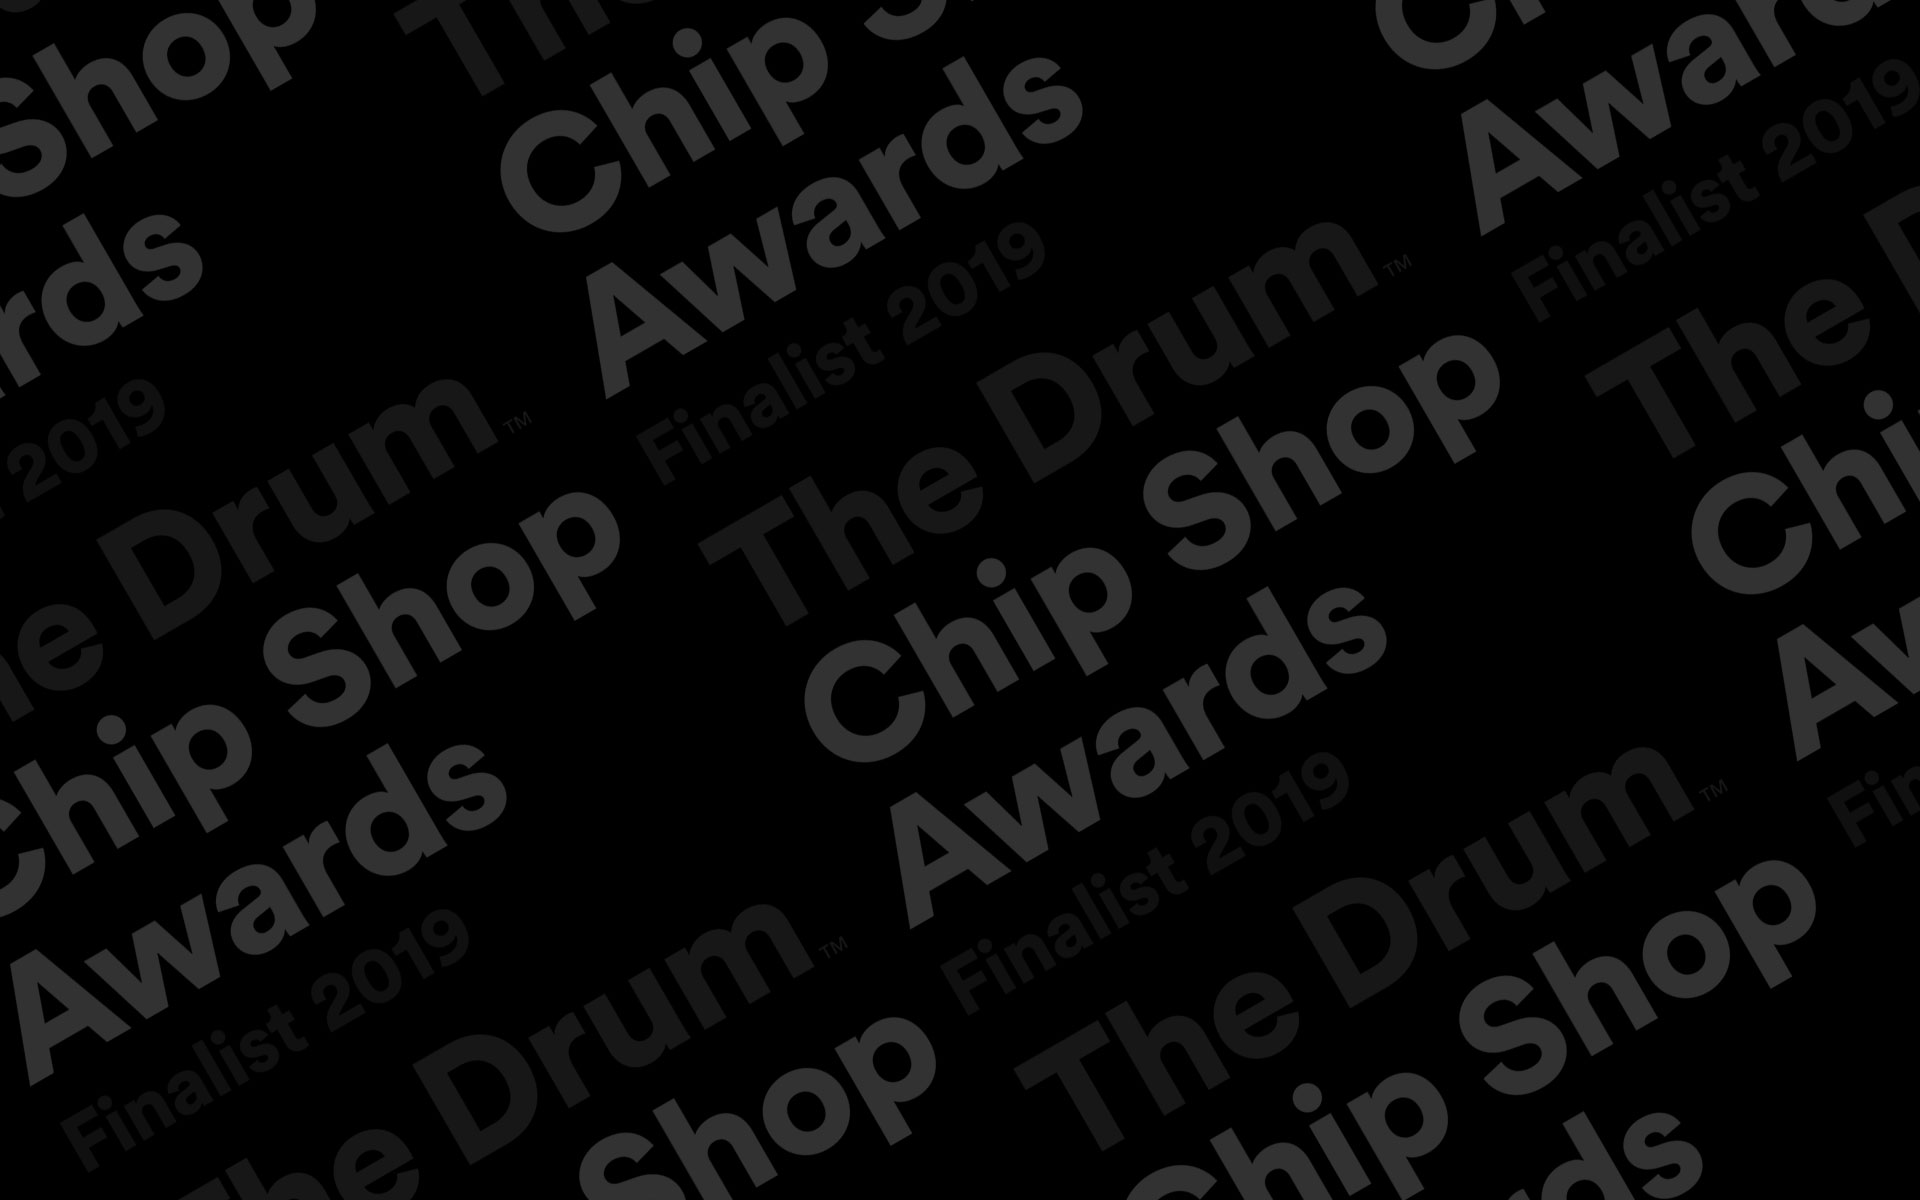 We're nominated in 7 categories at The Chip Shop Awards by The Drum